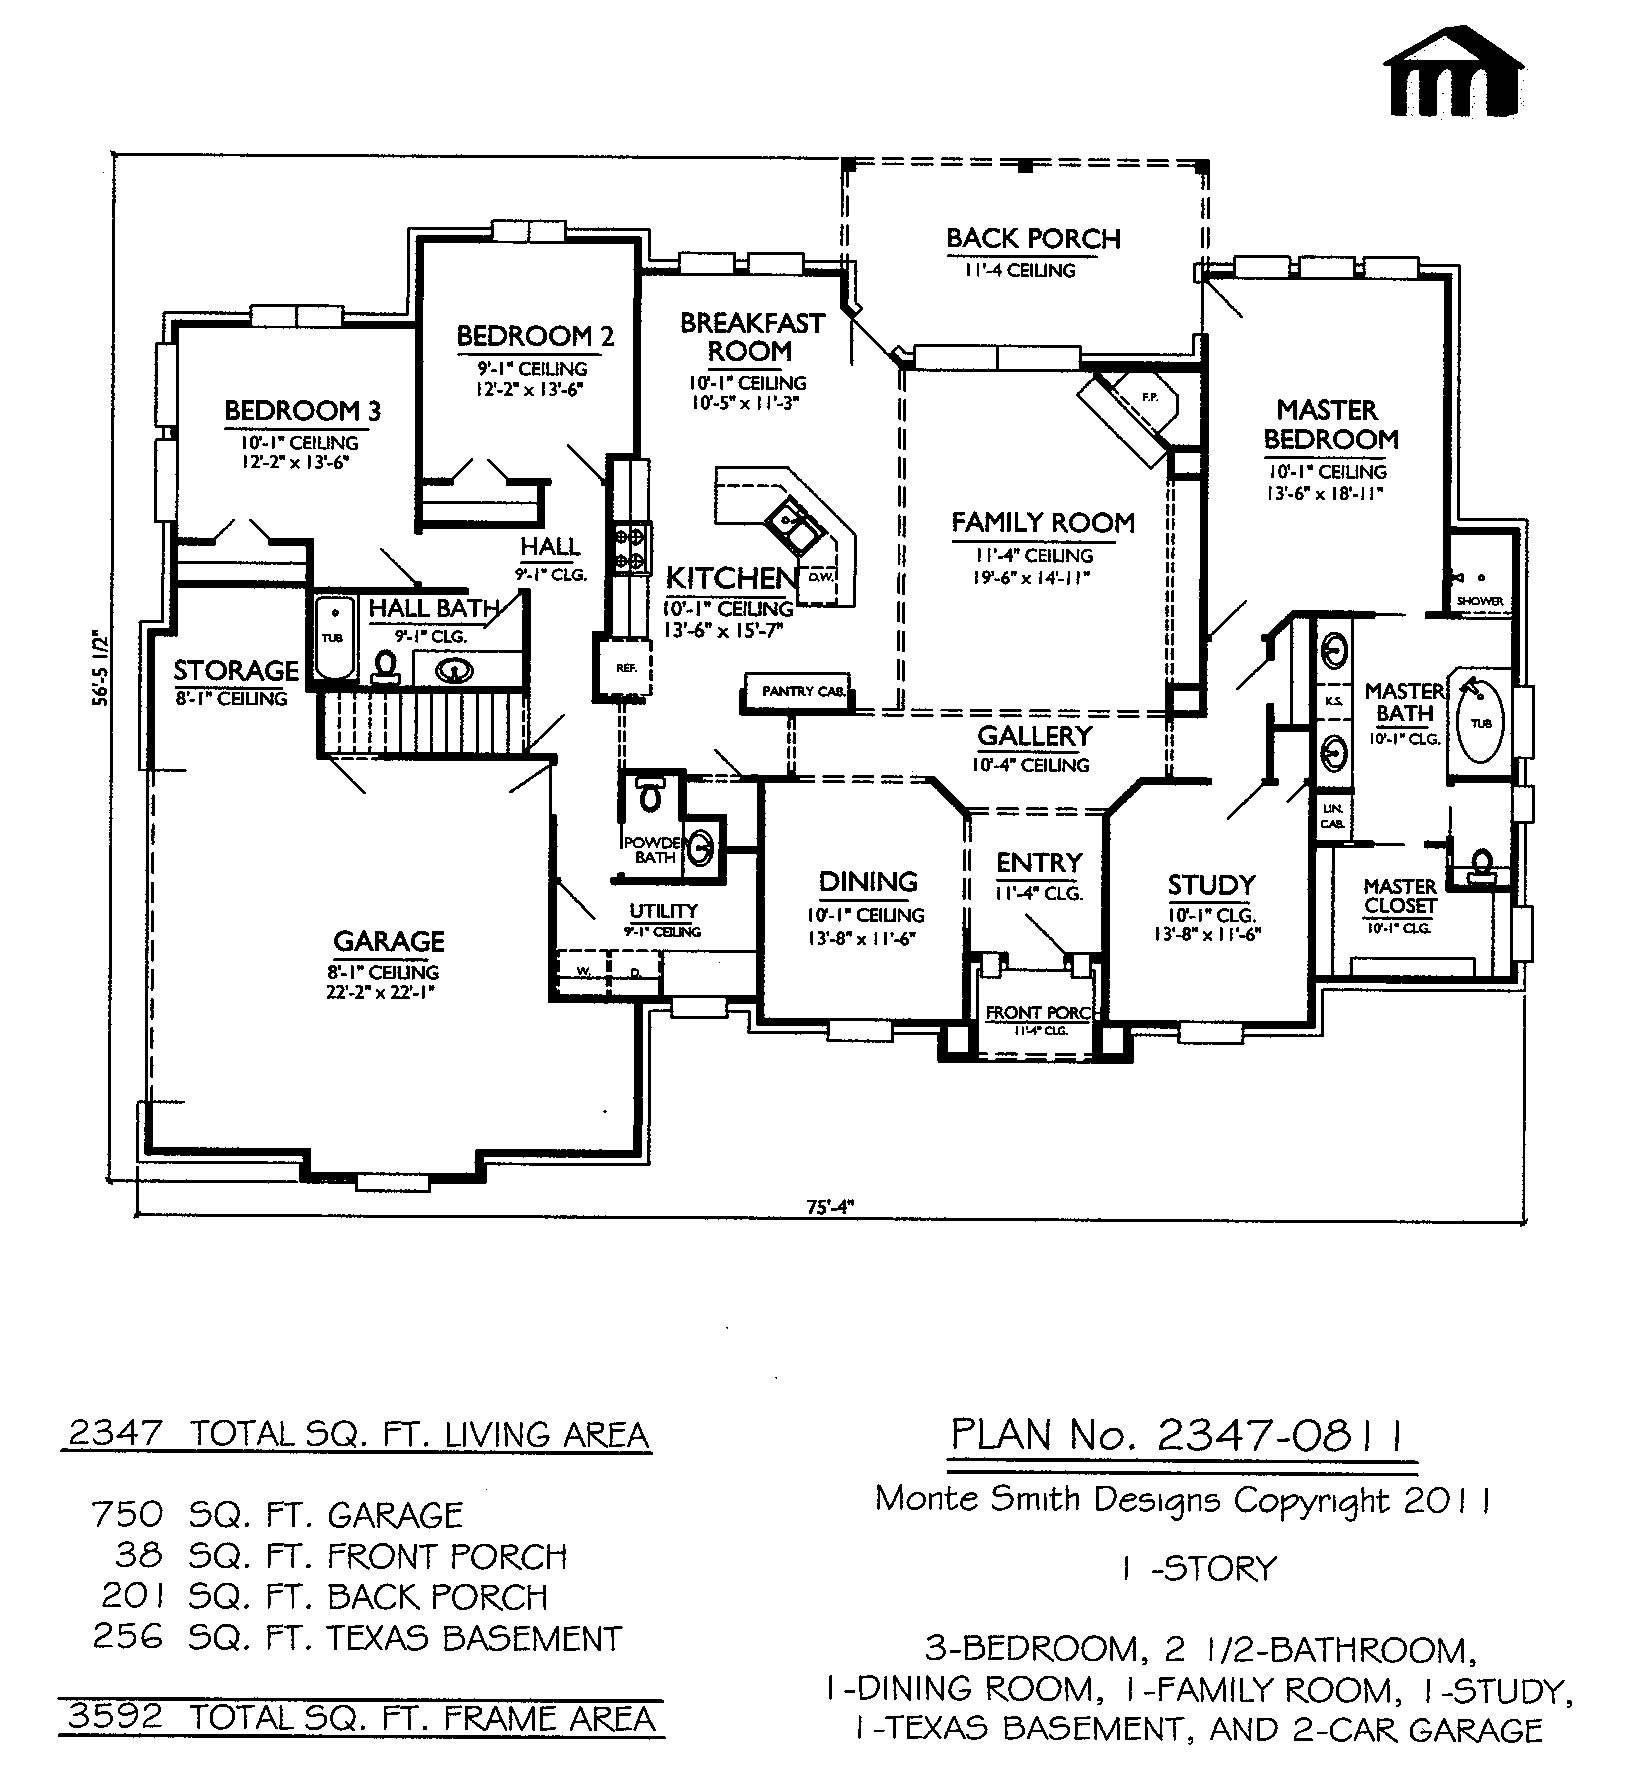 2 story 3 bedroom house plans vdara two bedroom loft 1 1 for 2 story house plans with loft